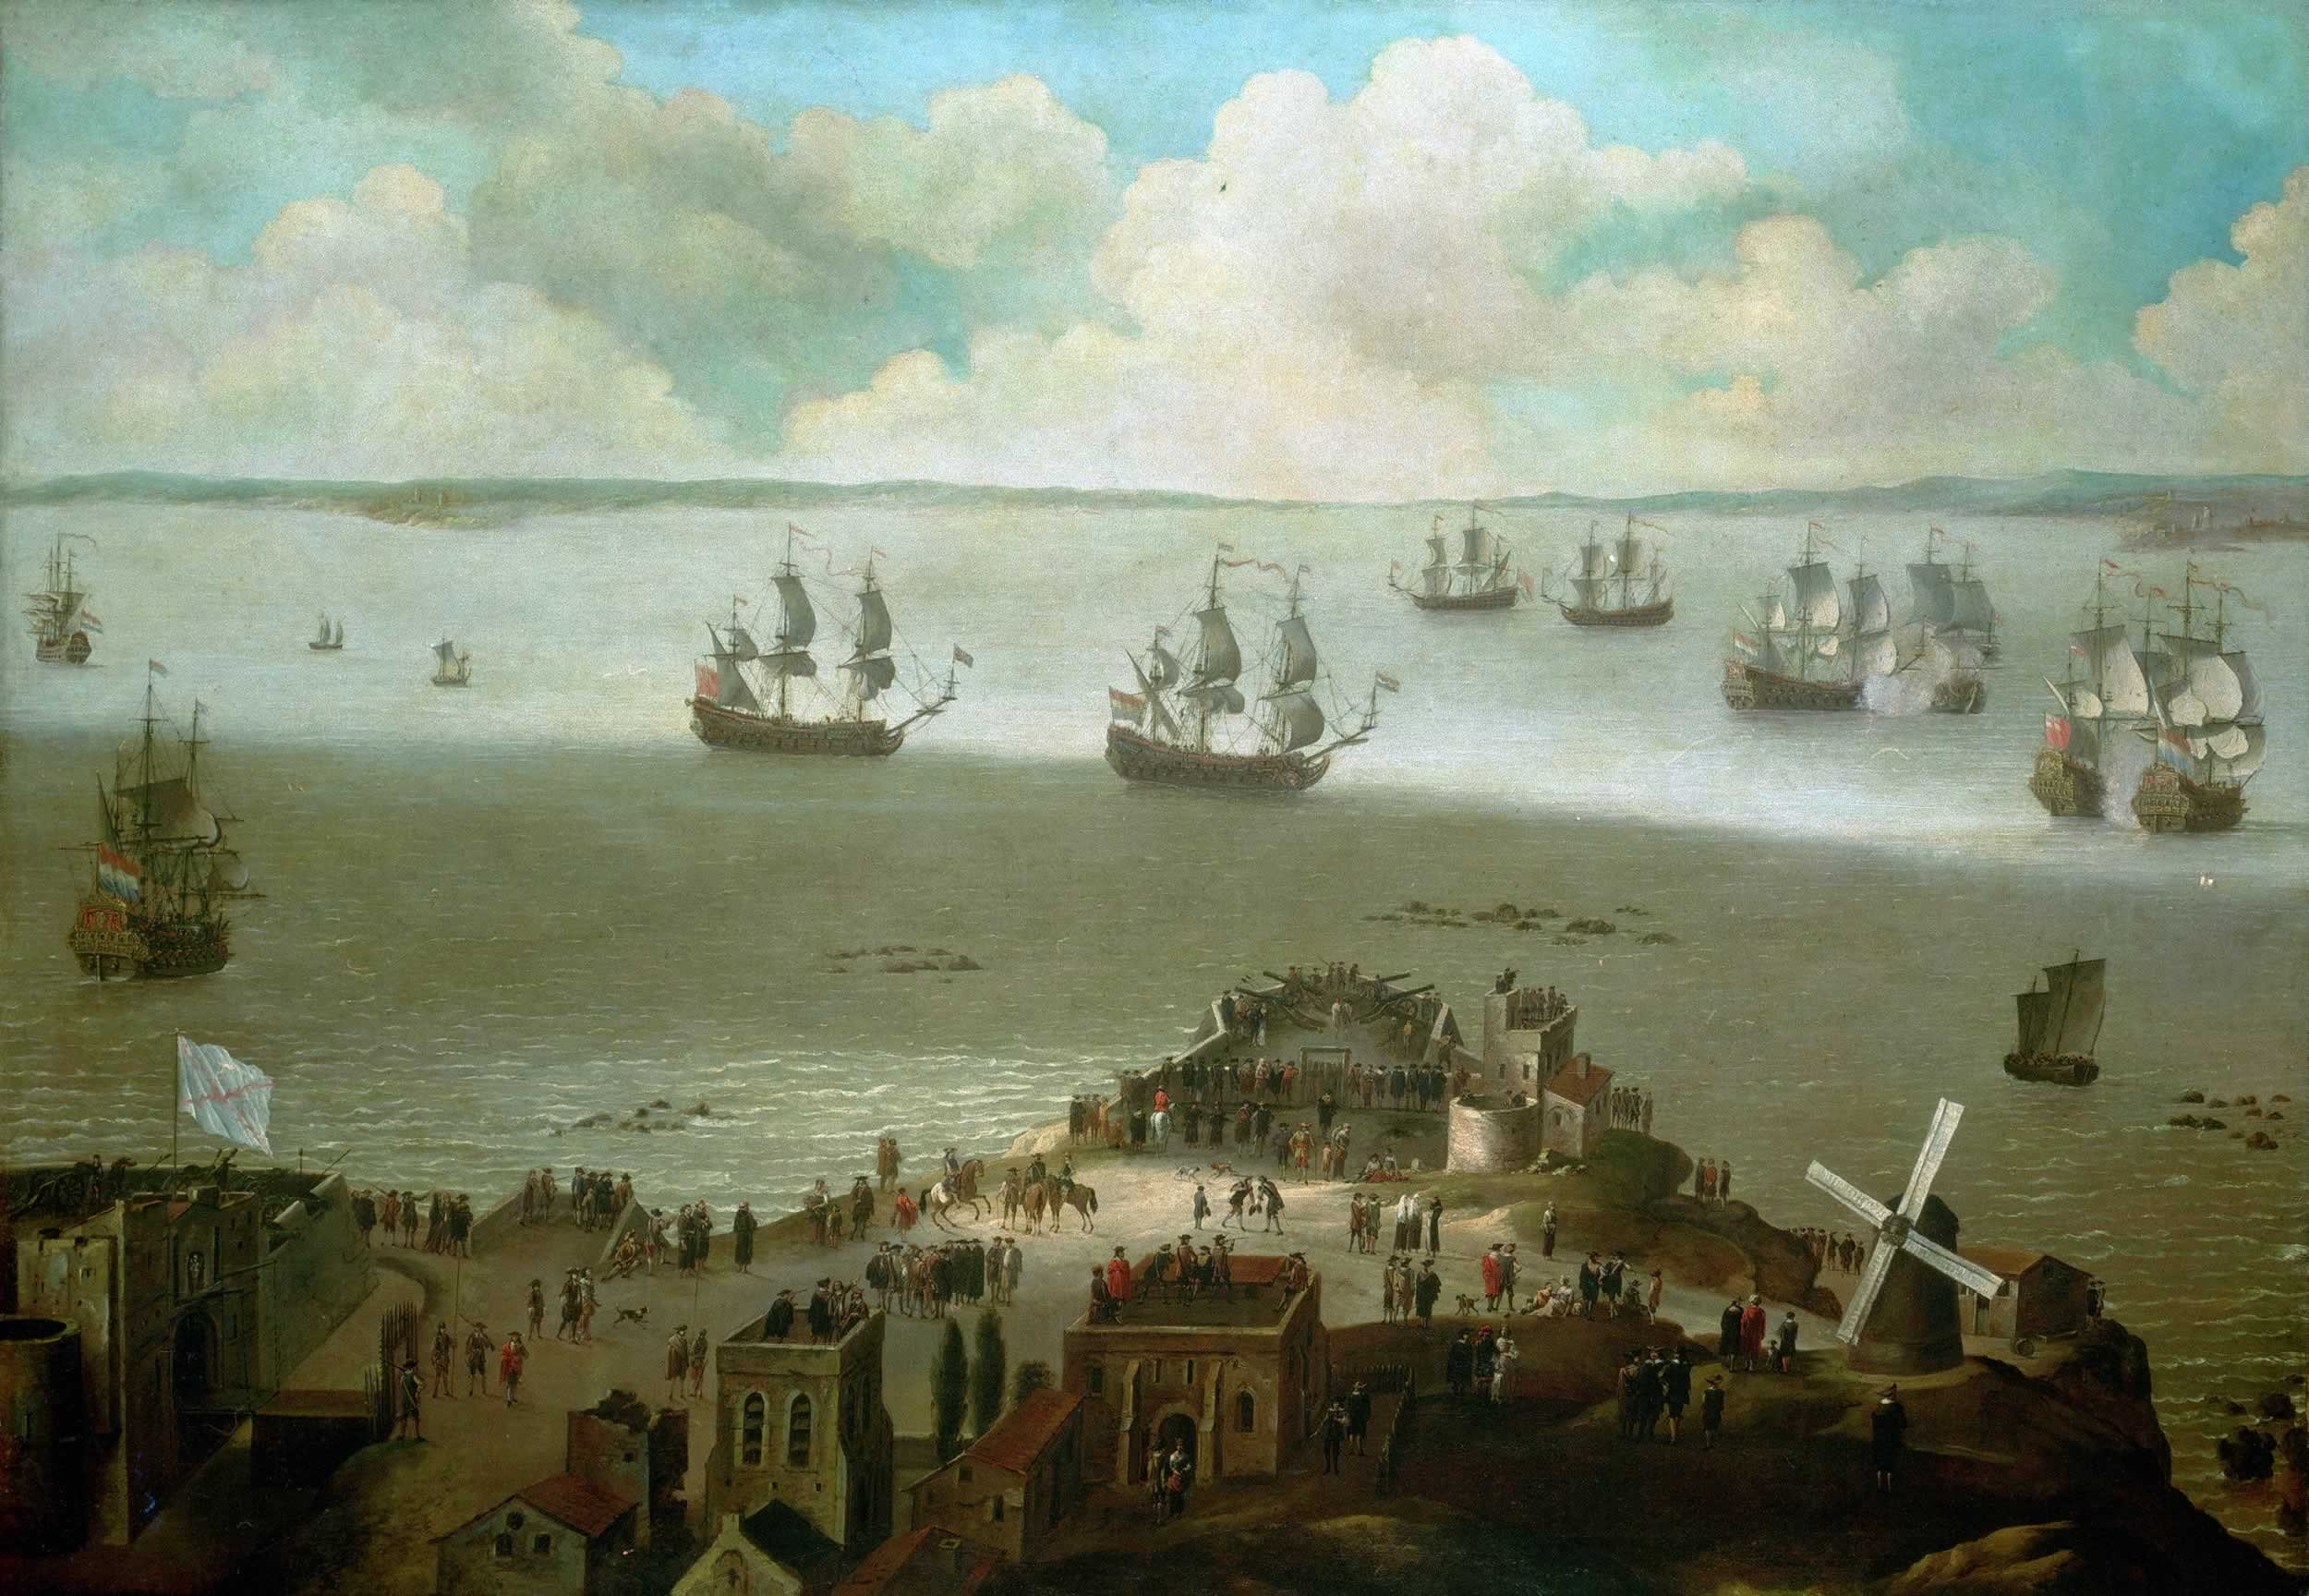 HMS_'Tiger'_taking_the_'Schakerloo'_in_the_harbour_of_Cadiz,_23_February_1674